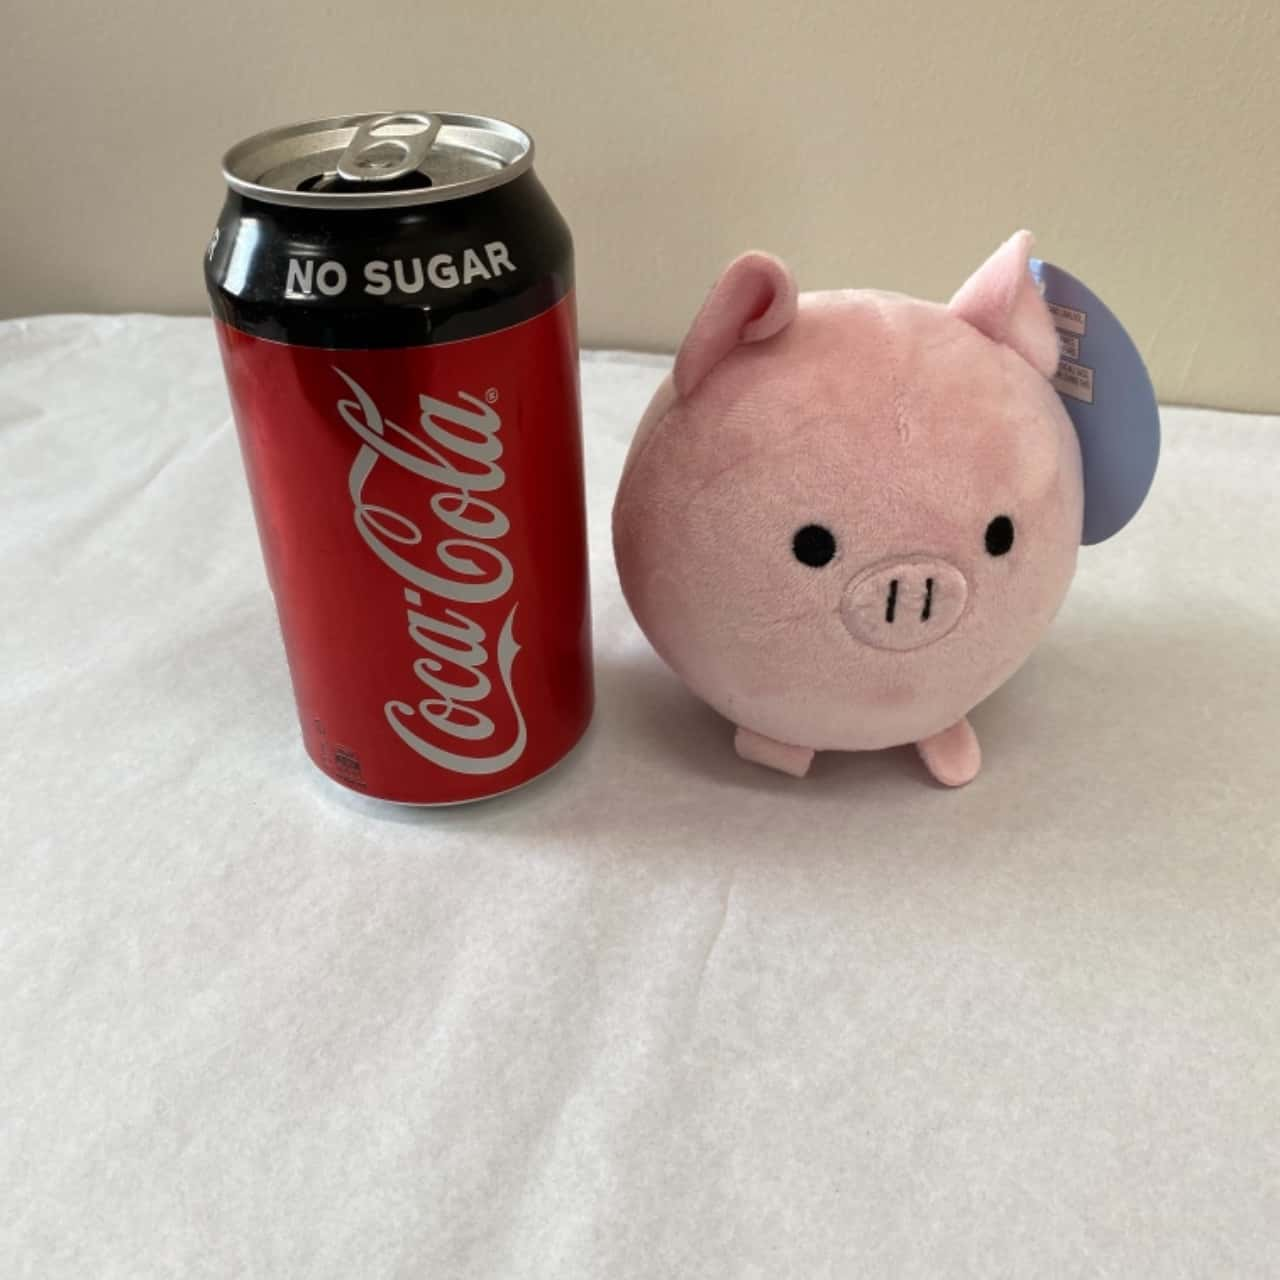 Squishy Plush, Squishy Foam Scented Plush Pig- New With Tags